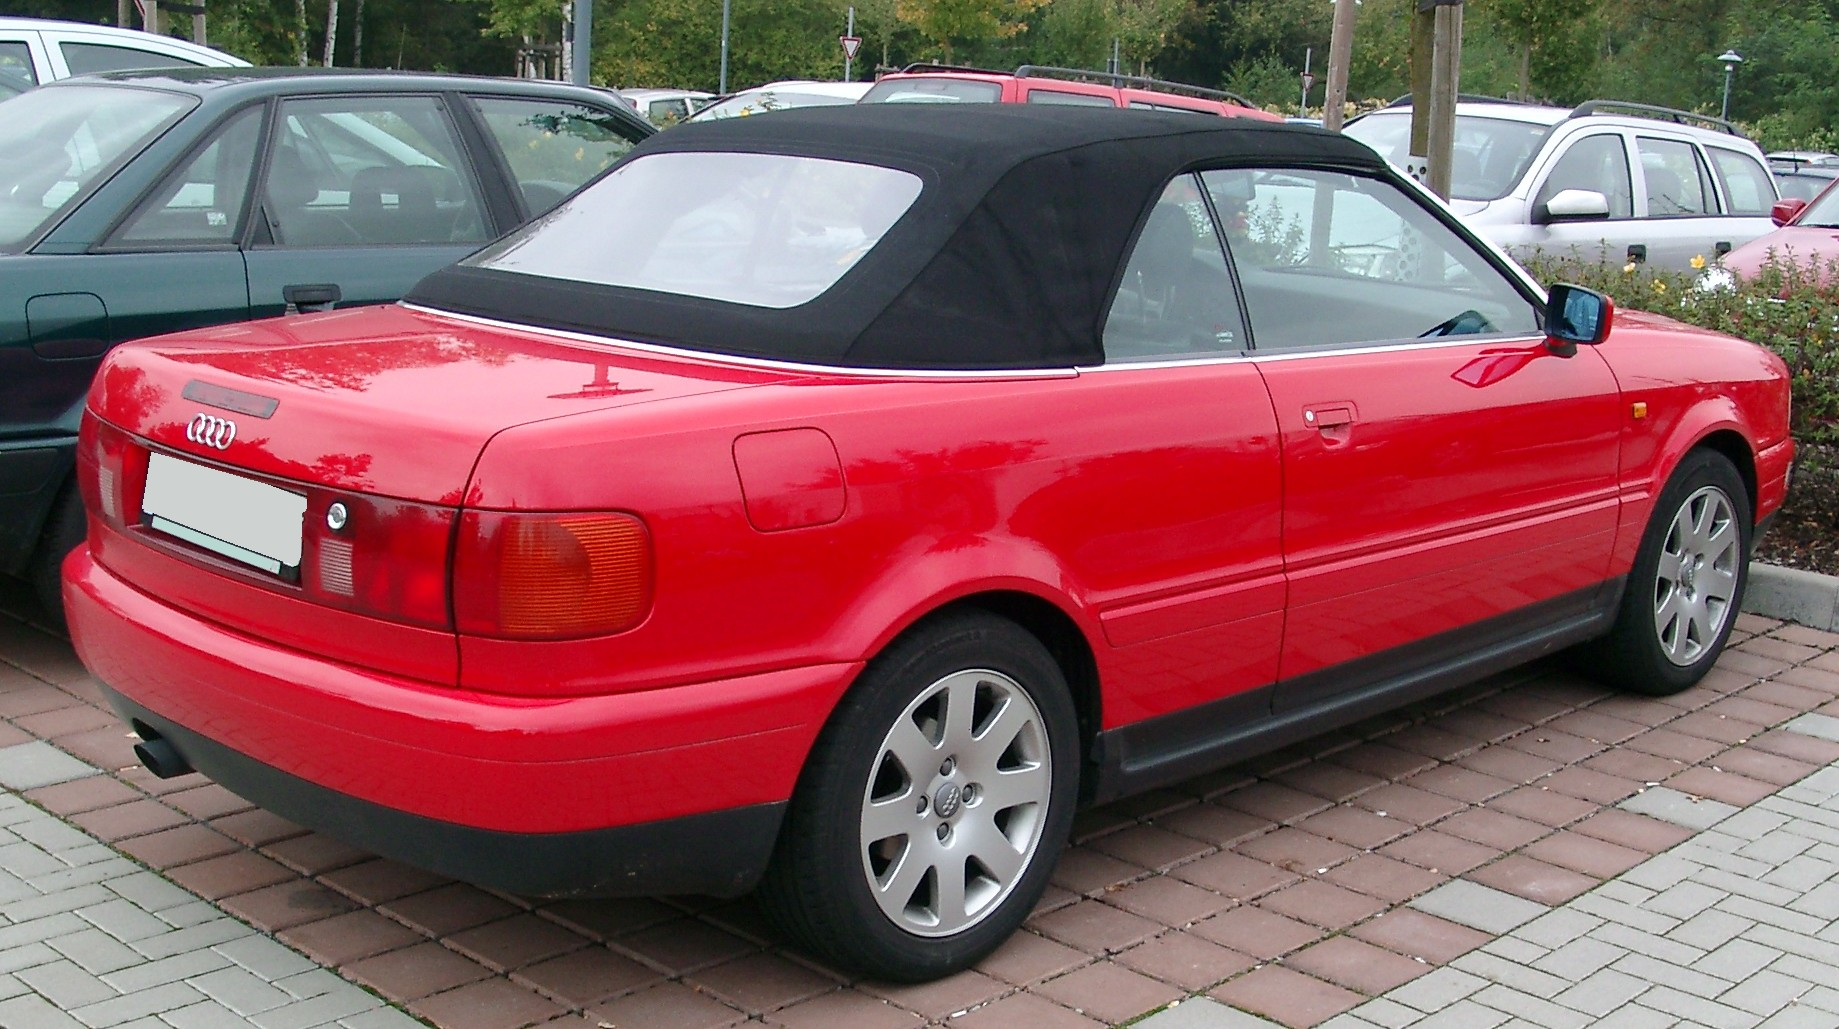 File:Audi B4 Cabriolet rear 20071002.jpg - Wikimedia Commons